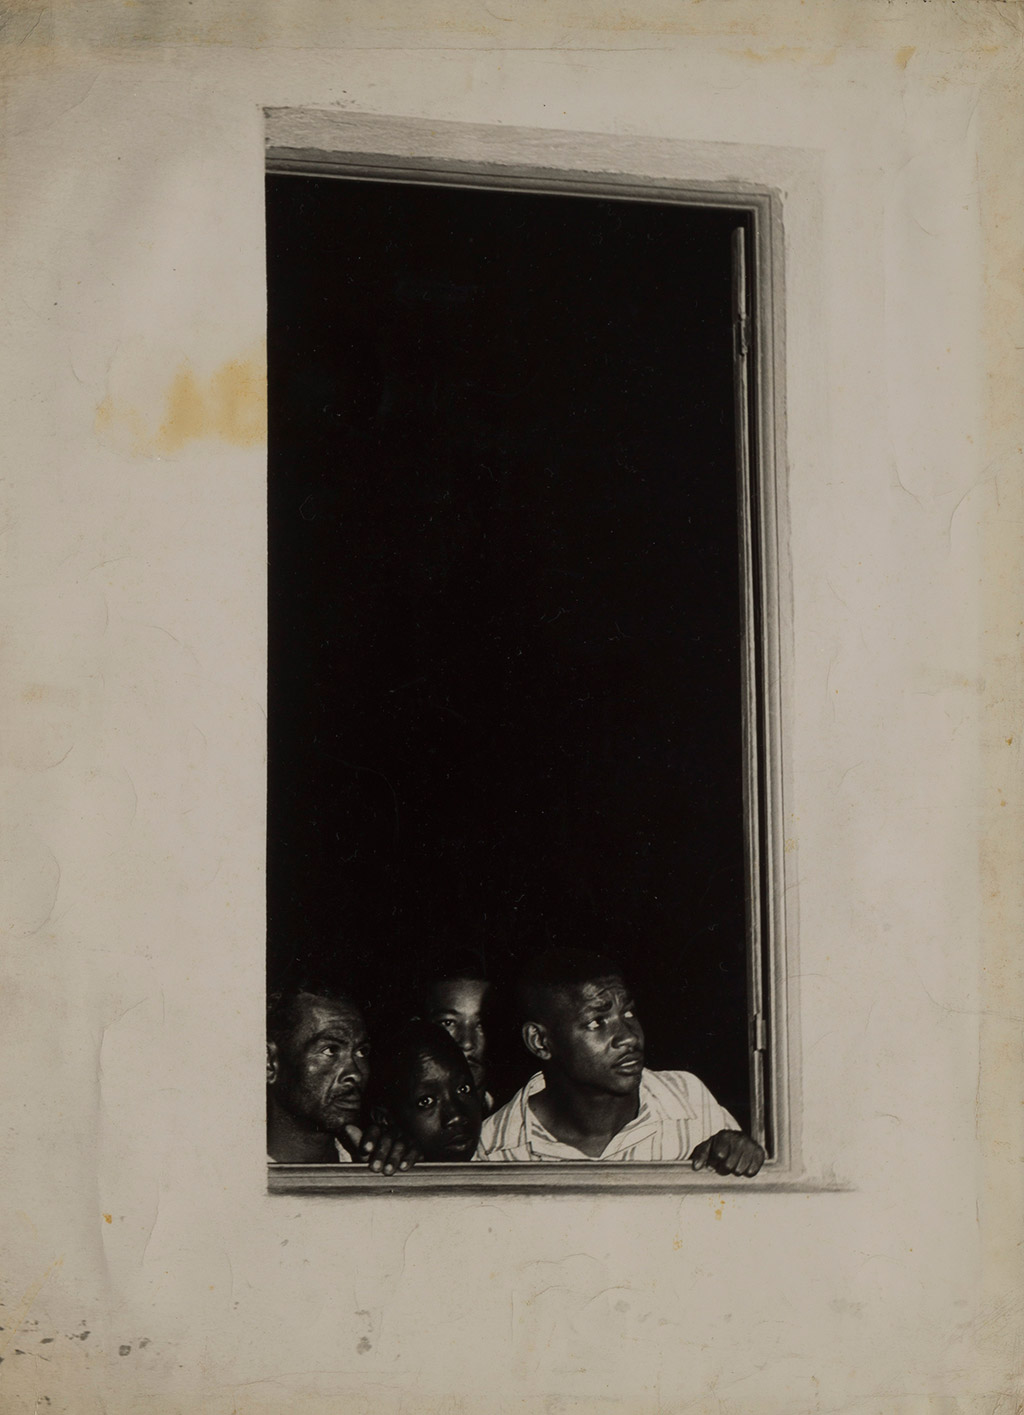 [Description: Black and white photograph of people looking out of a window]